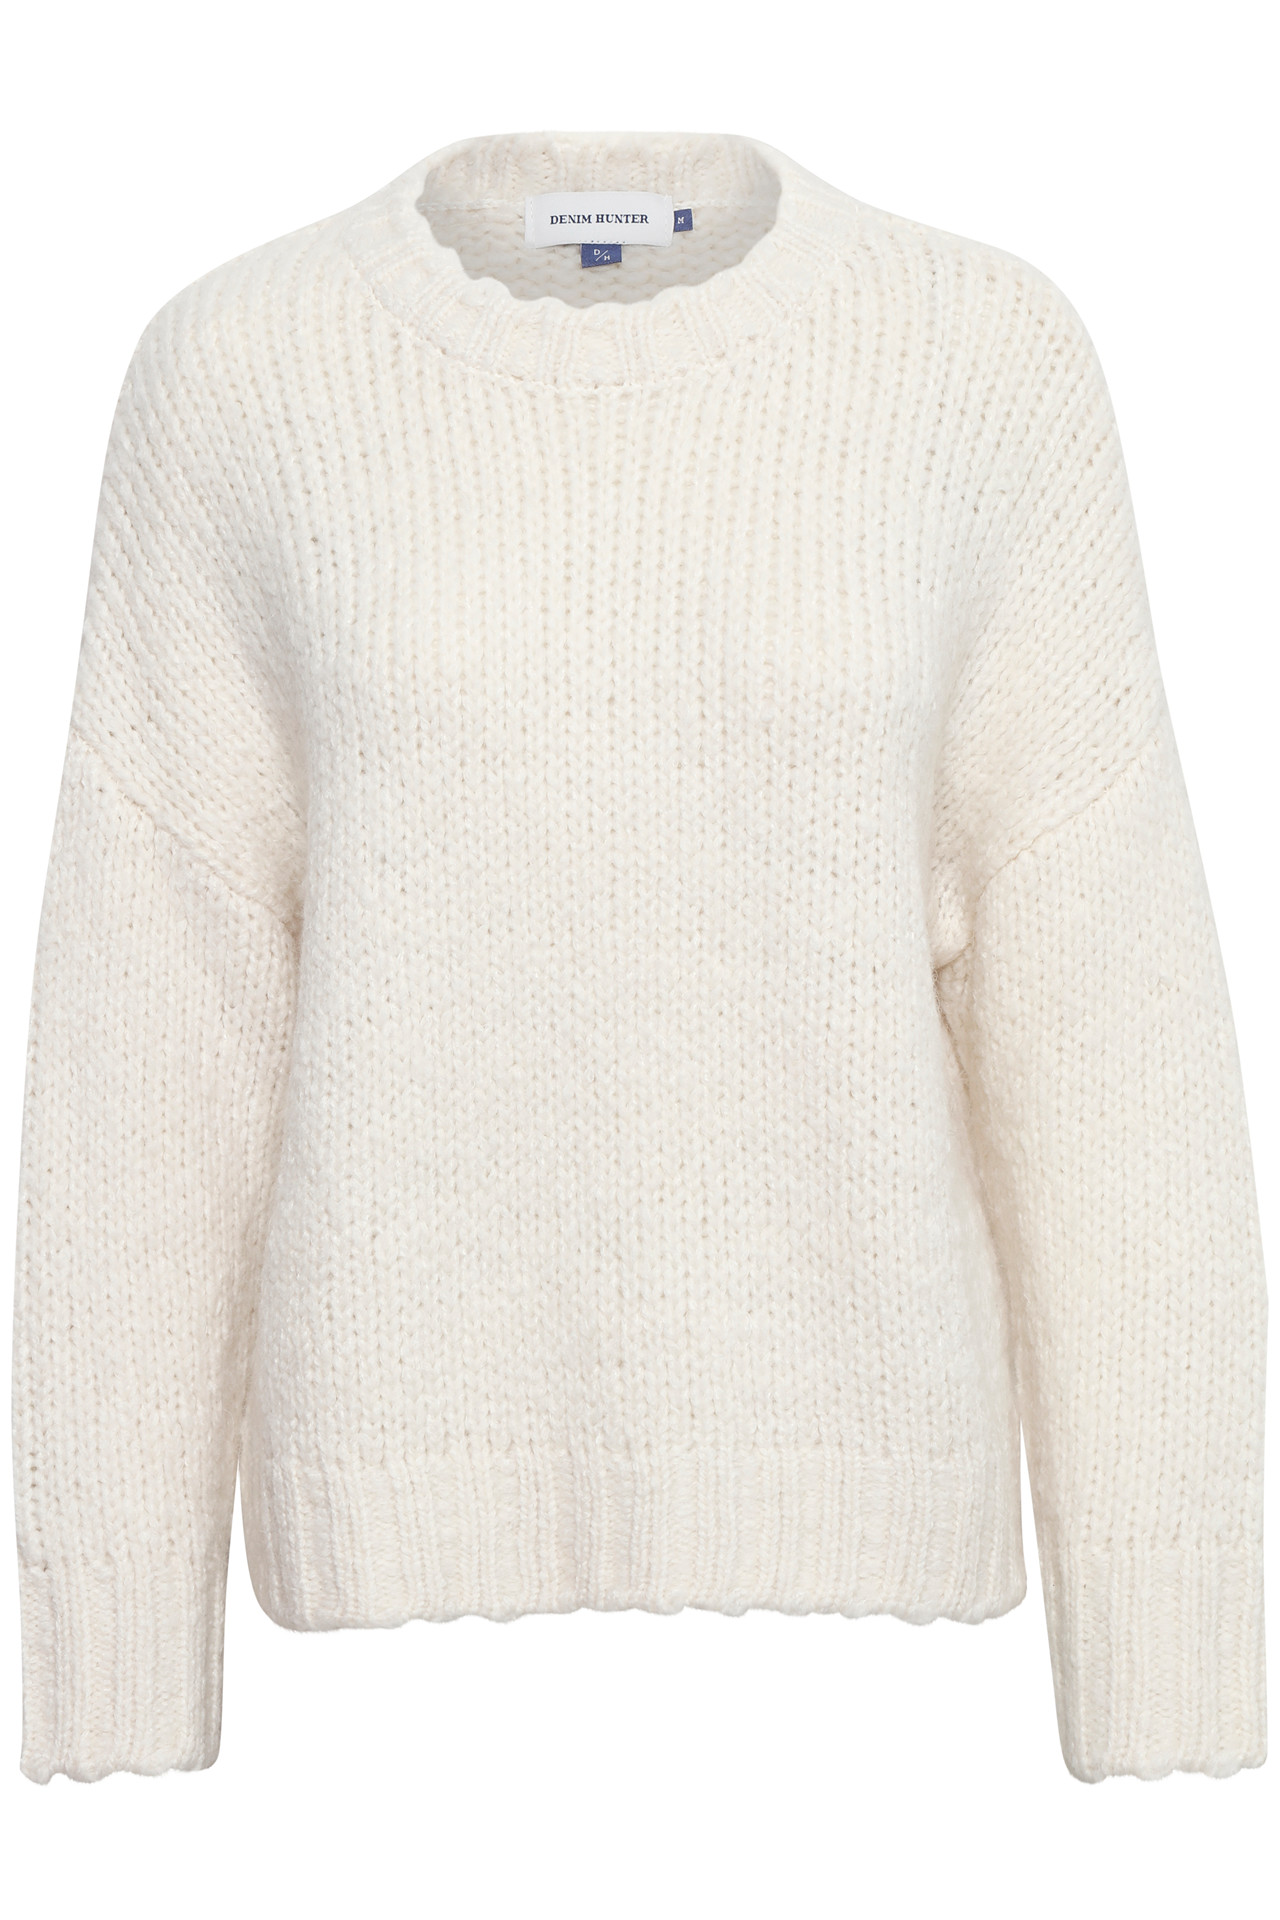 Image of   Denim Hunter DHWILLOW KNIT PULLOVER W 10702466 (Whisper White 36024, XL)